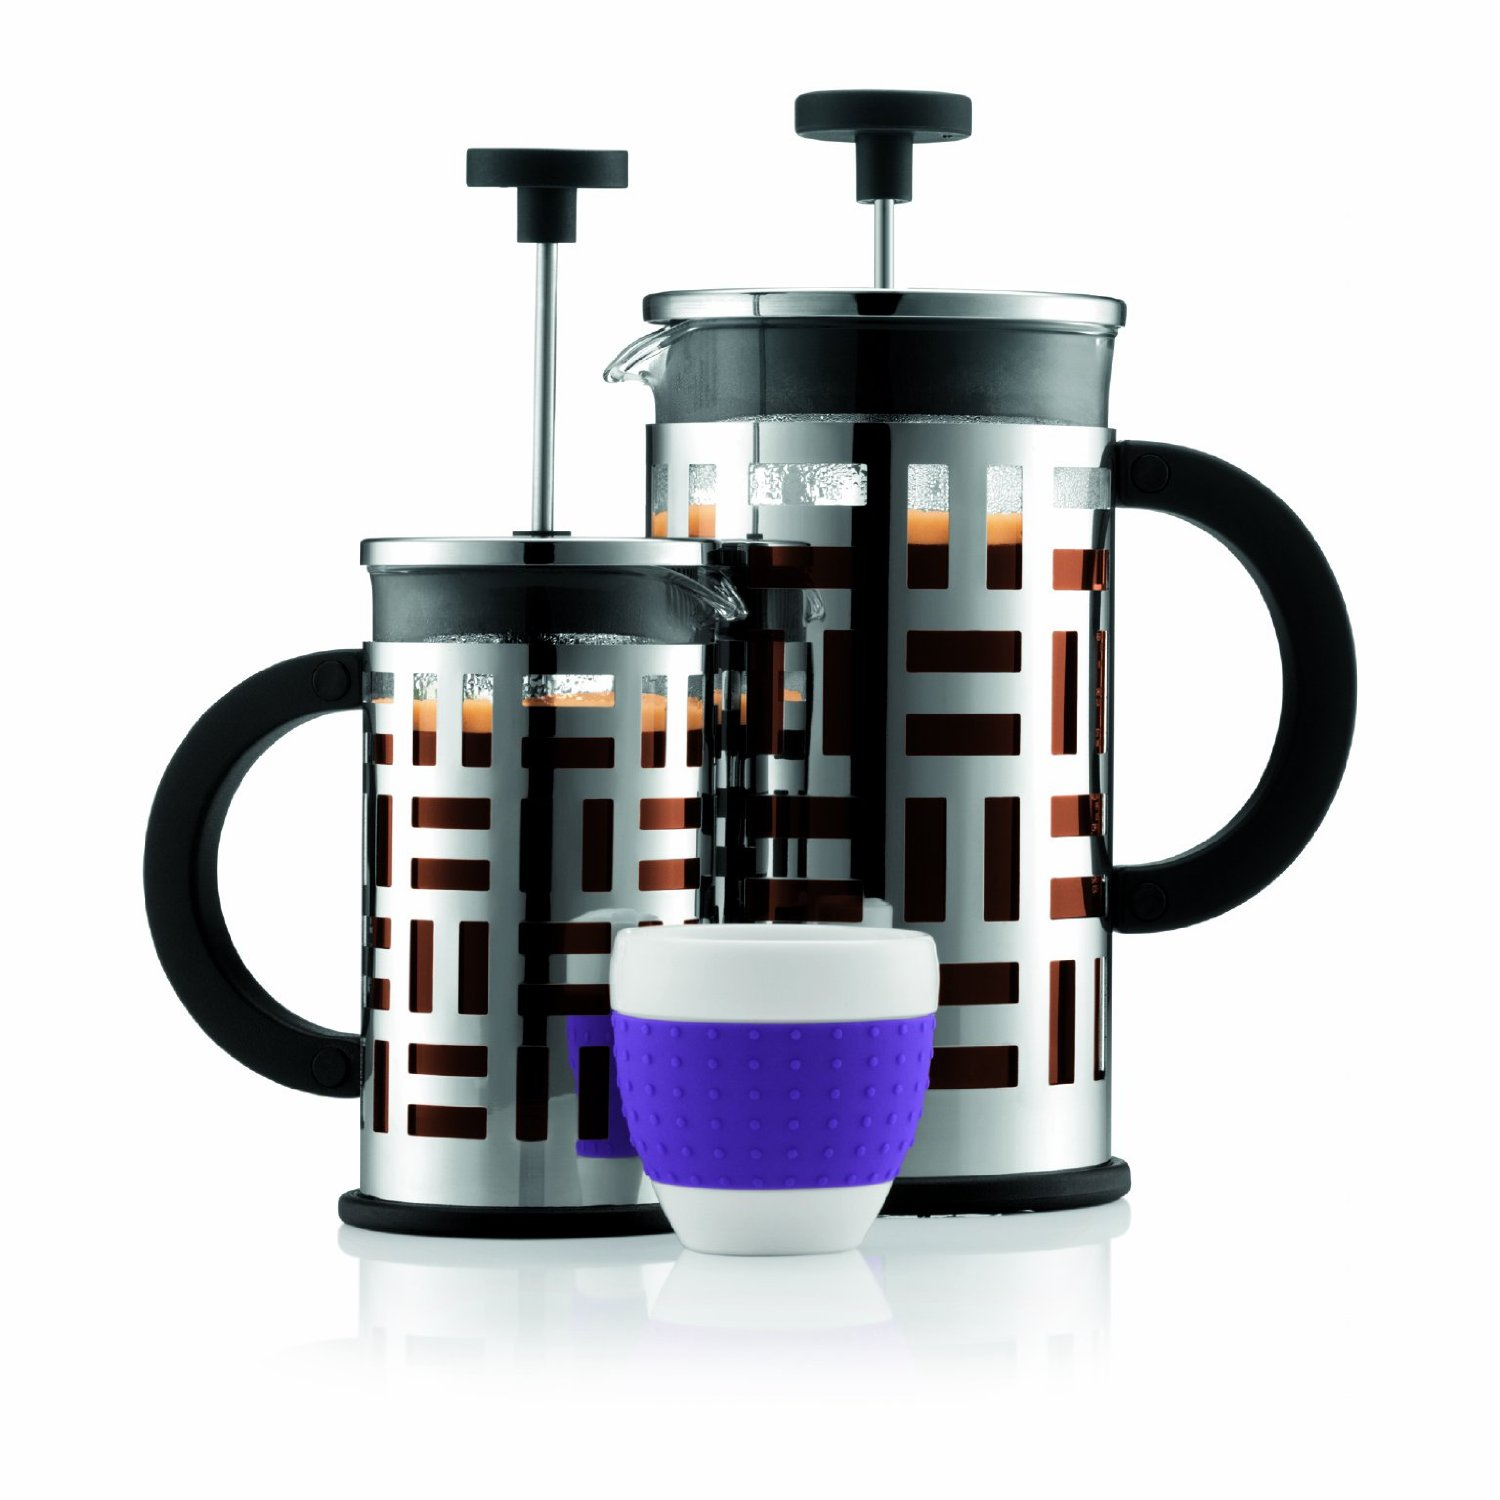 French Press Coffee Maker Kit : Holiday Gift Guide - Awesome Gifts for Foodies and Cooks - Growing Up Bilingual